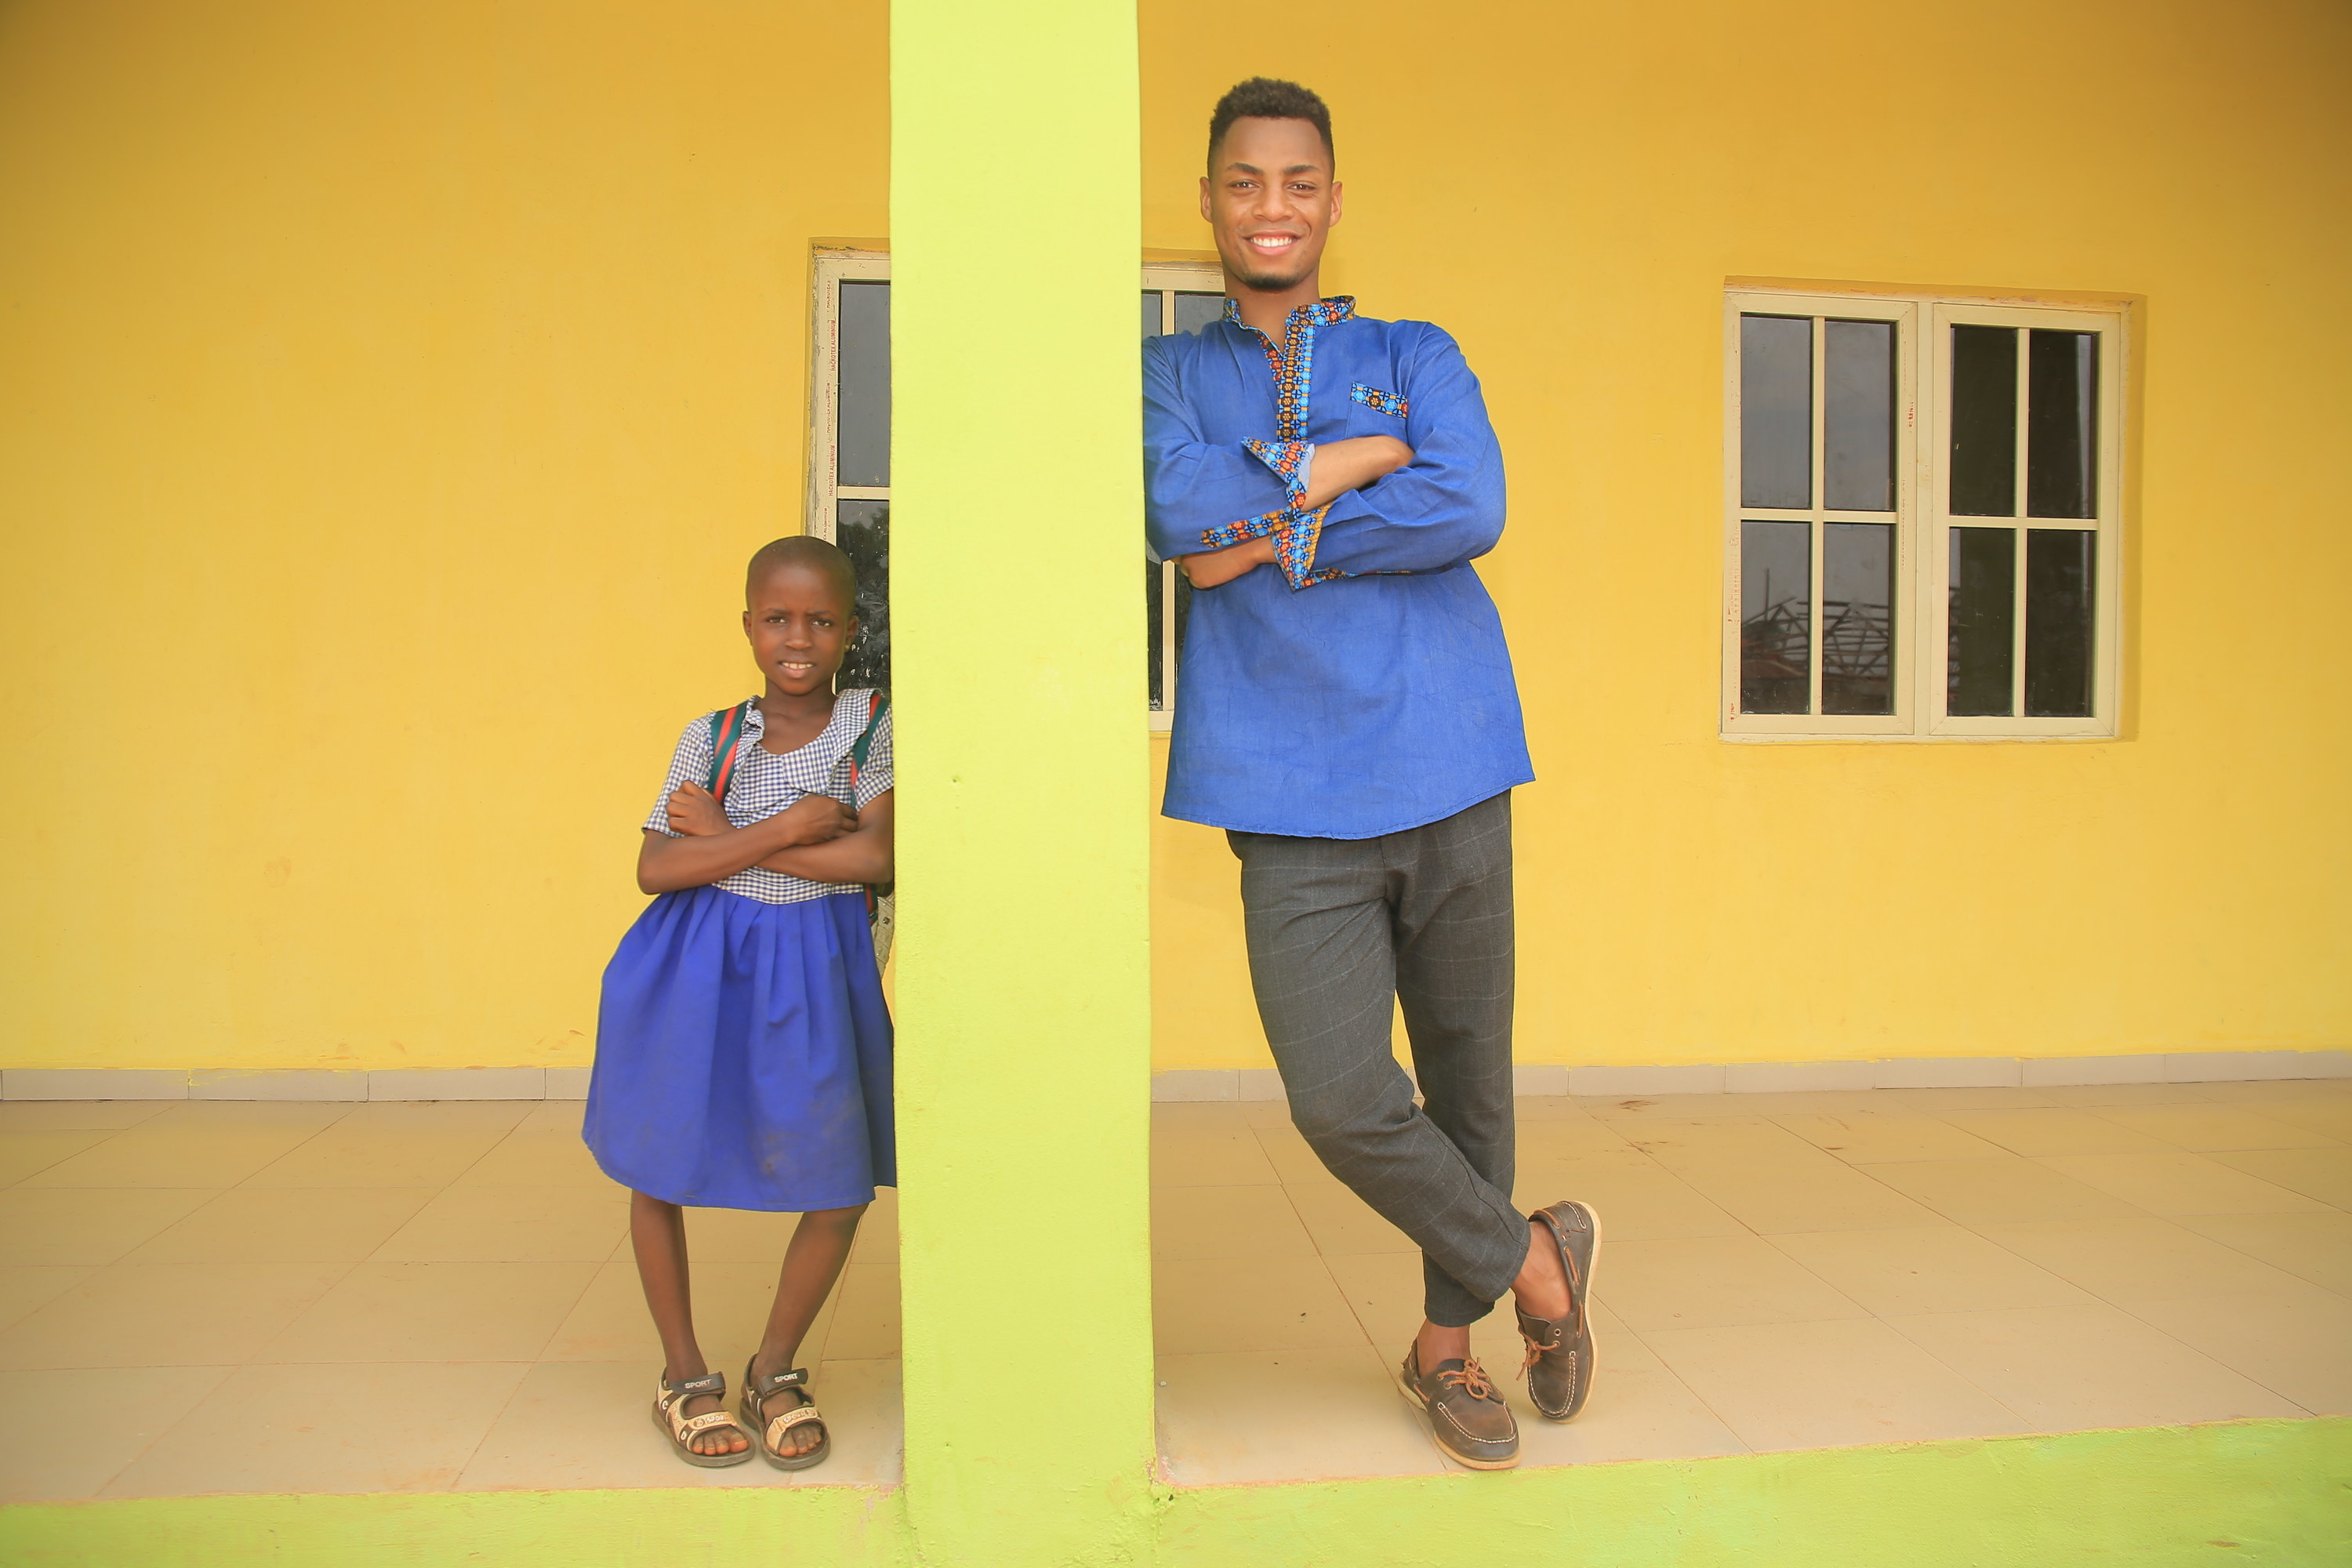 A young child (left) and Uyi Omorogbe (right) lean against a yellow pillar